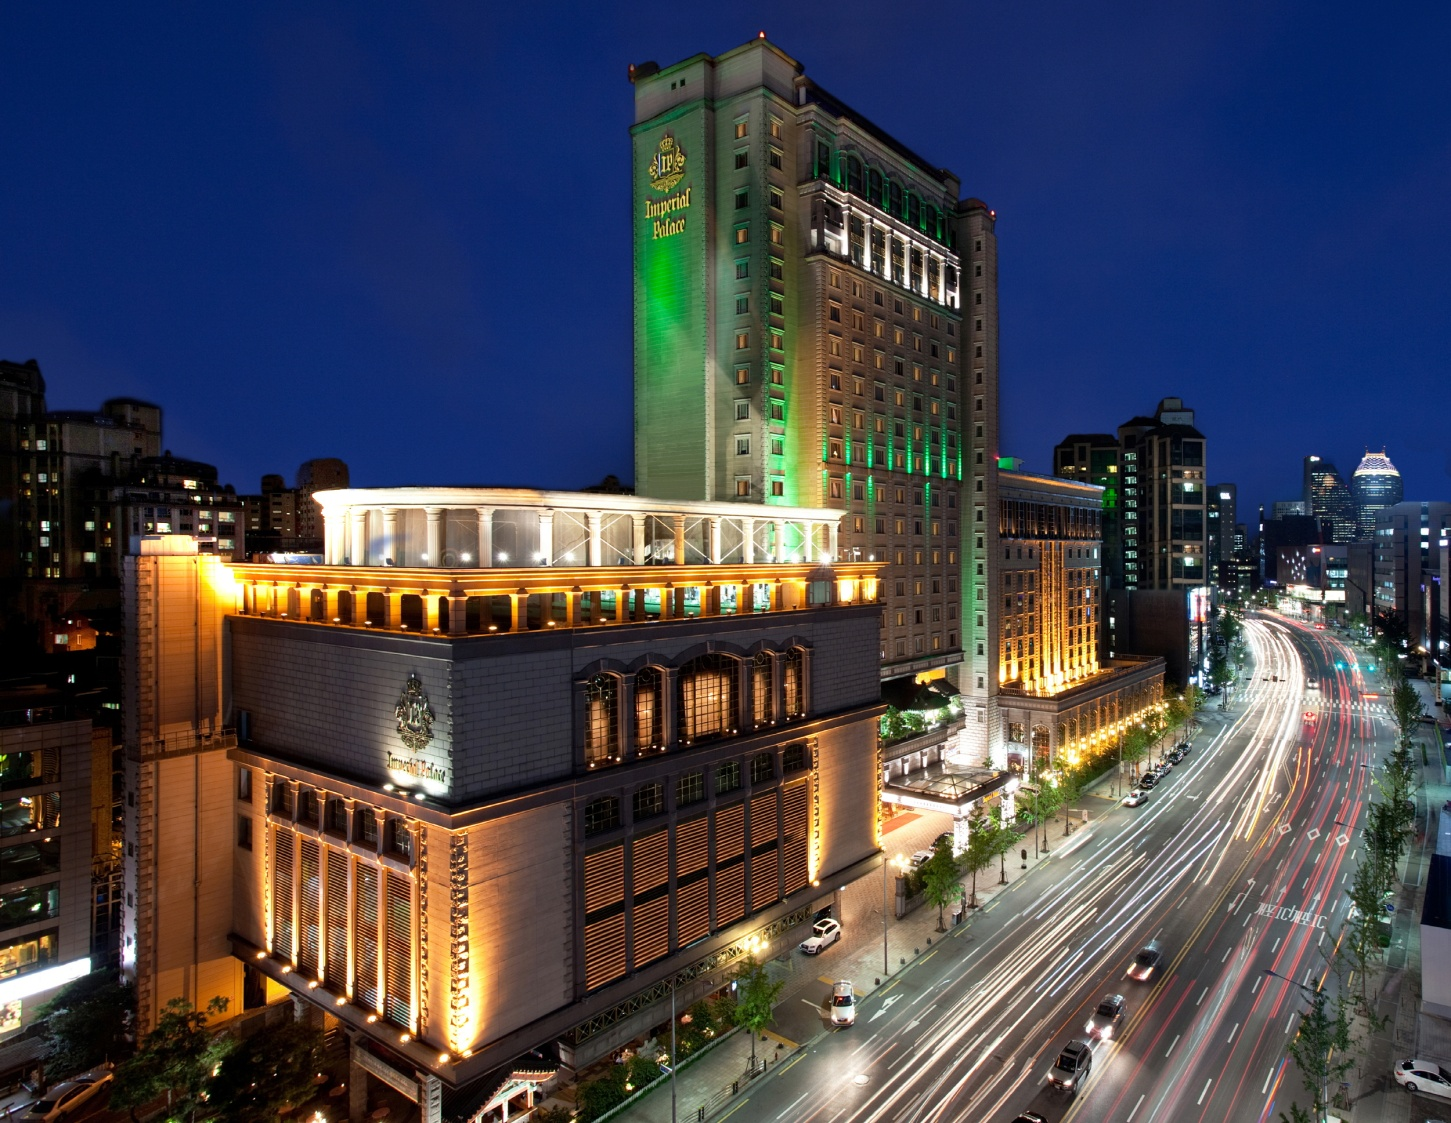 The Imperial Palace Seoul hotel.